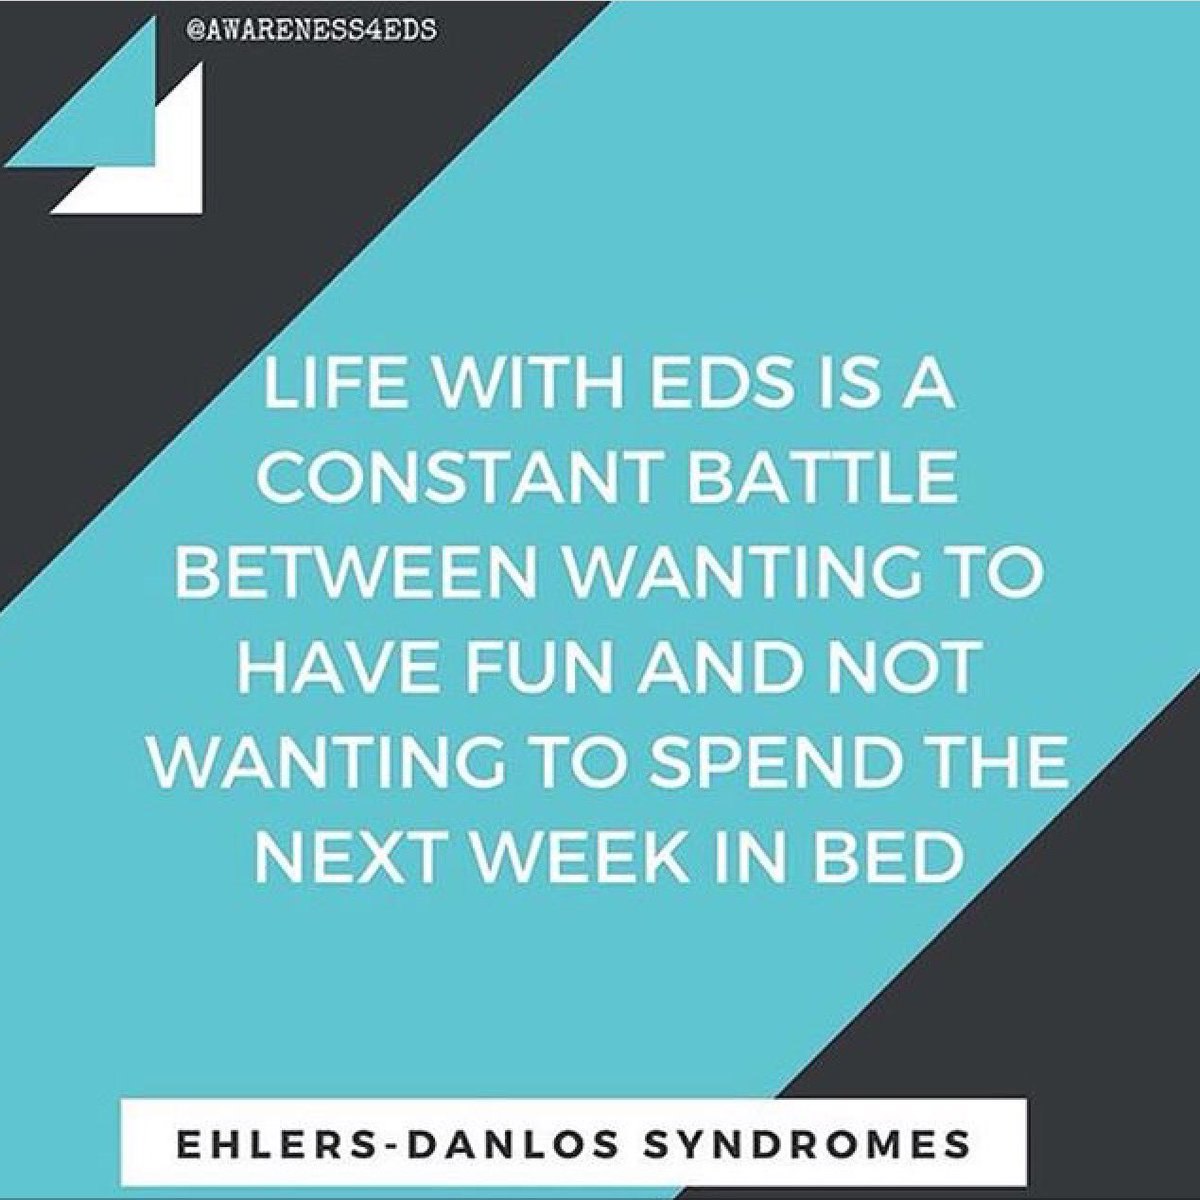 Luckily for me it&#39;s just most of the following day. #awareness4eds #eds #ehlersdanlos #ehlersdanlosawareness #spoonie #chronicillness<br>http://pic.twitter.com/LypZB1XLSg